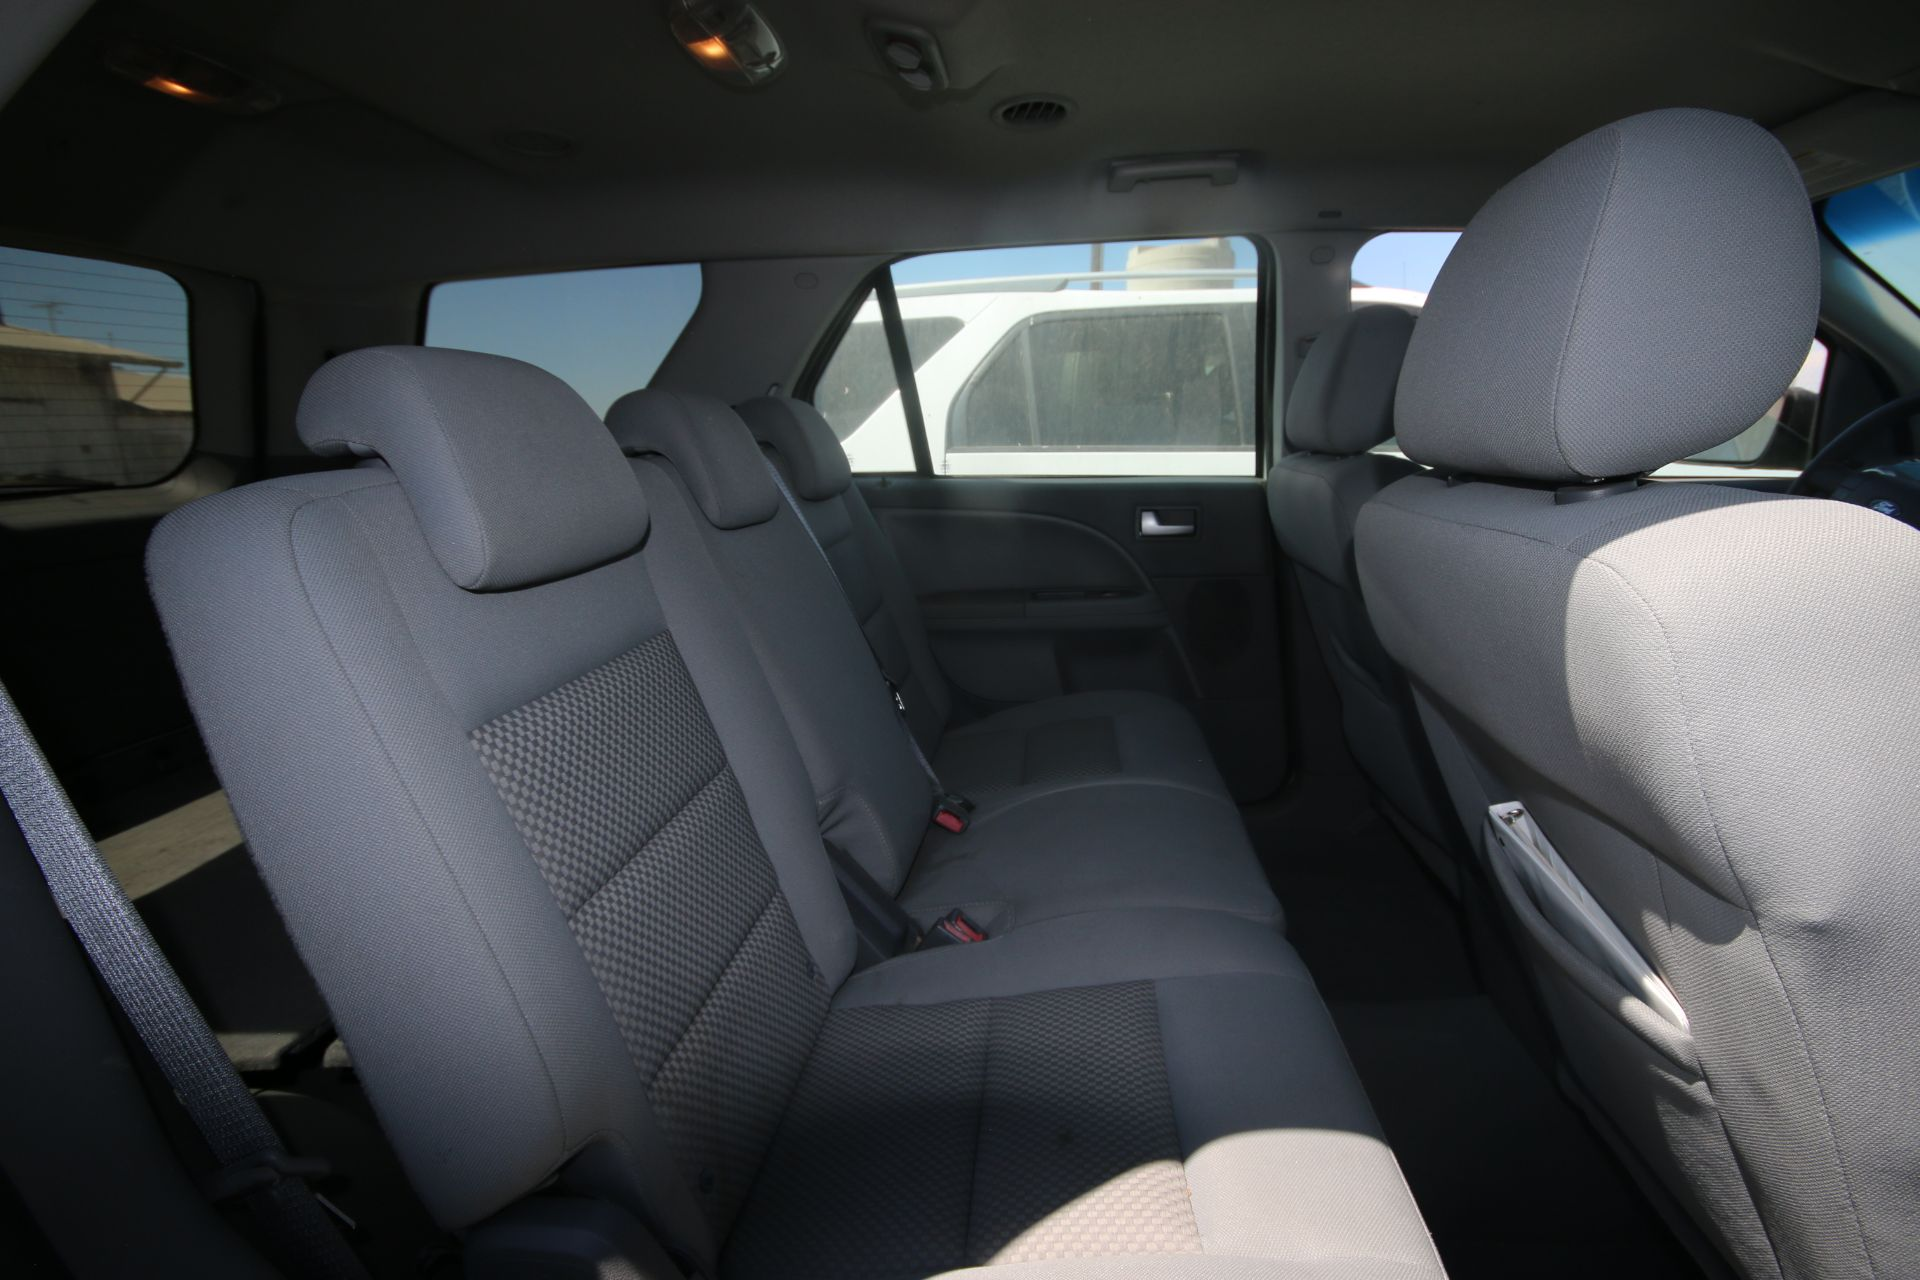 2006 Ford Freestyle, VIN #: 1FMDKO11X6GA41766, with 108,982 Miles, License Plate #: 5NGZ608, Started - Image 9 of 22